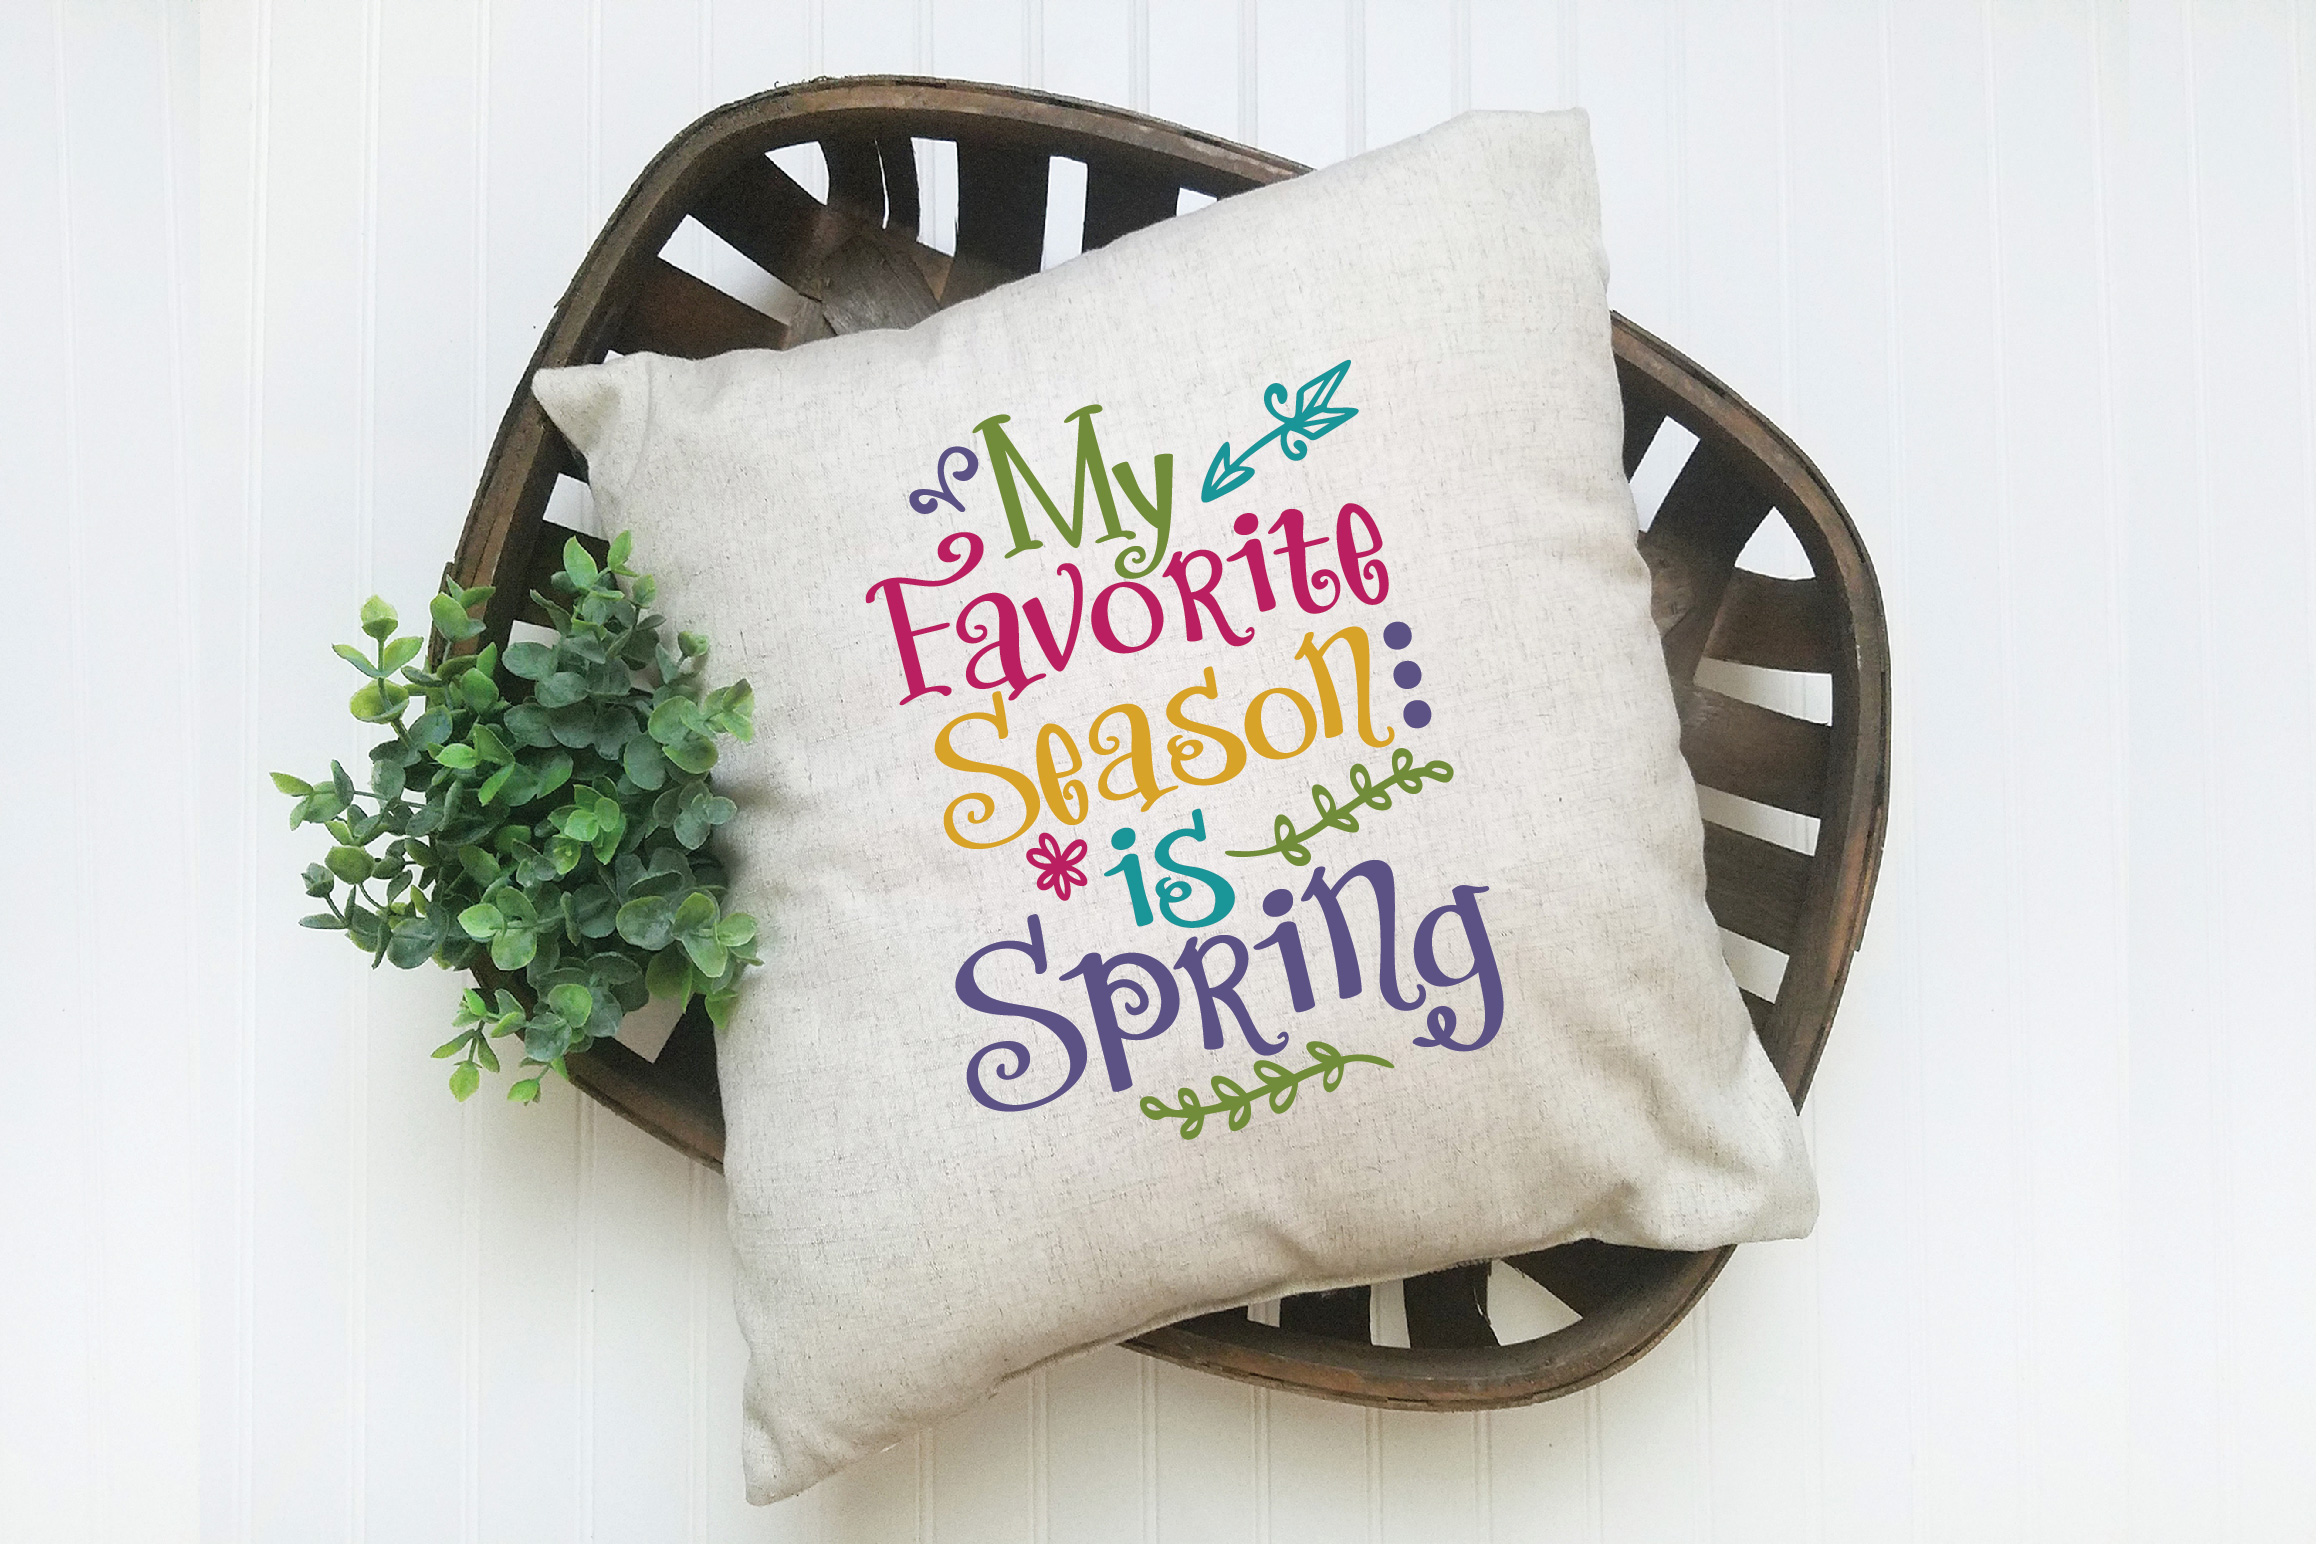 My Favorite Season is Spring SVG Cut File - Spring SVG DXF example image 5